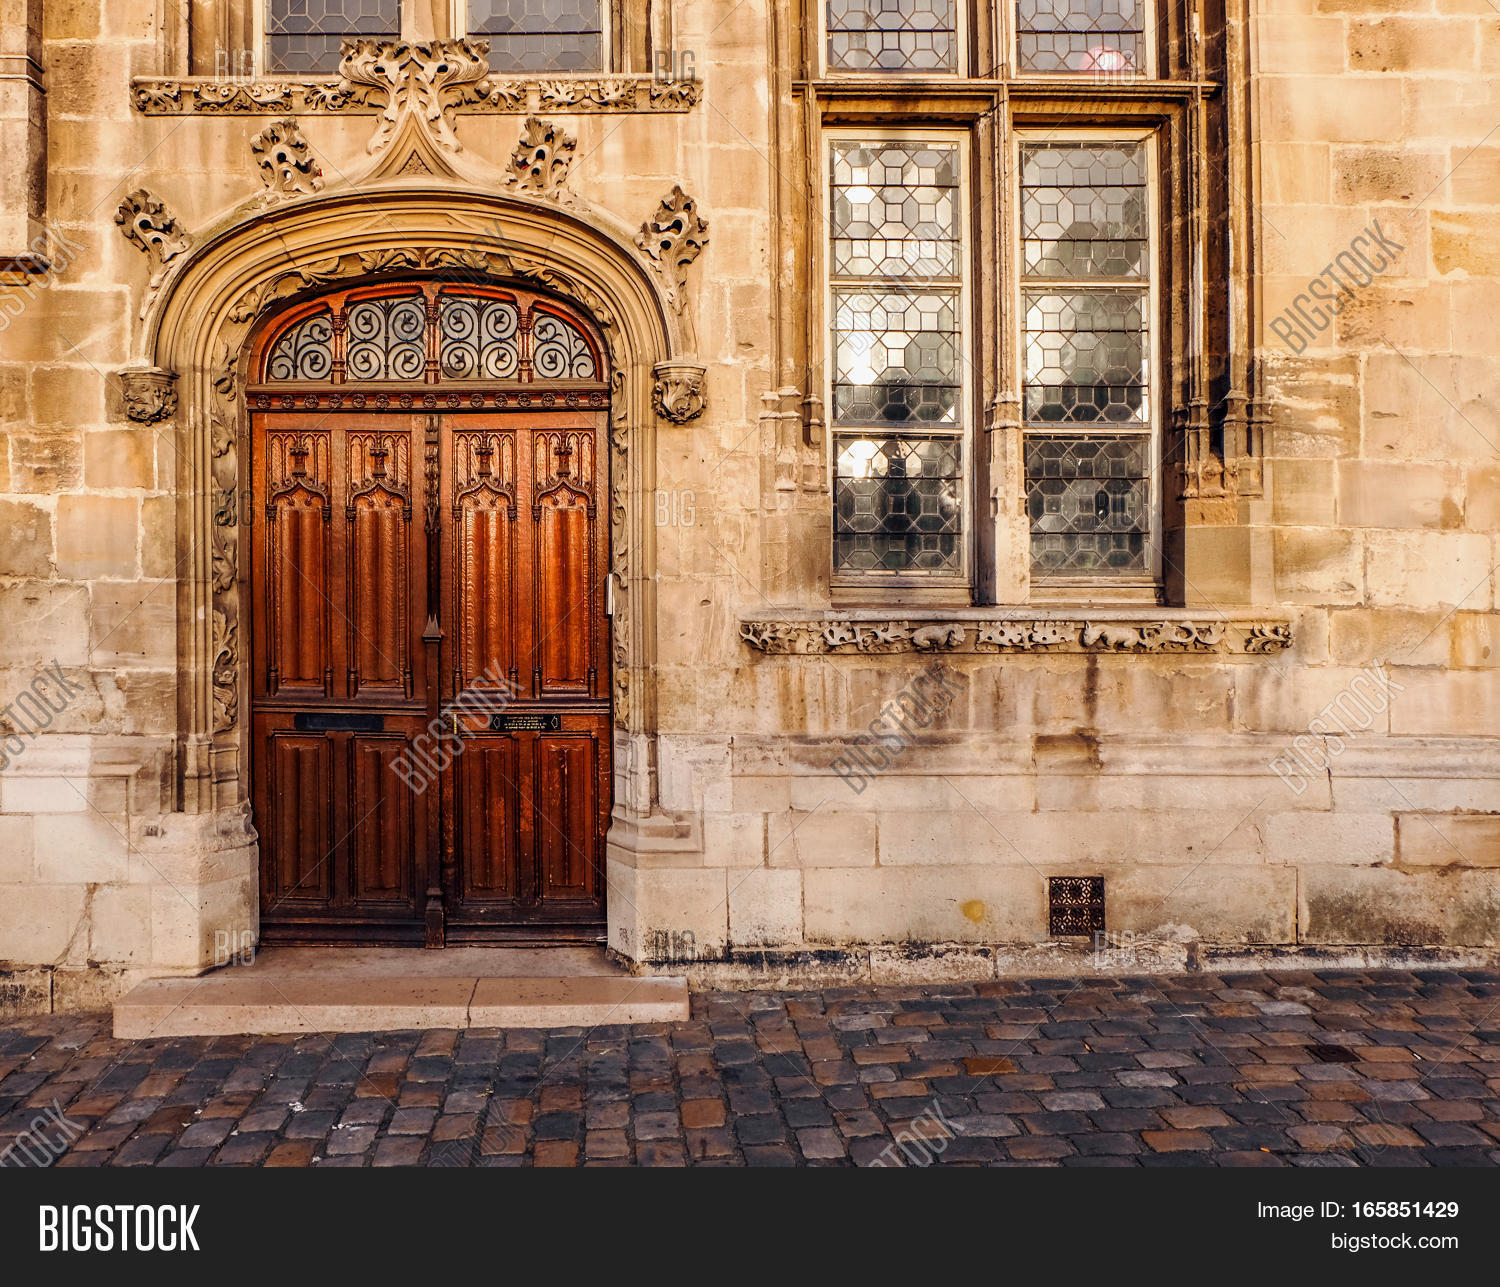 Wooden Double Door Entry Of An Old Church. The Door Frame Has A Rounded Arch